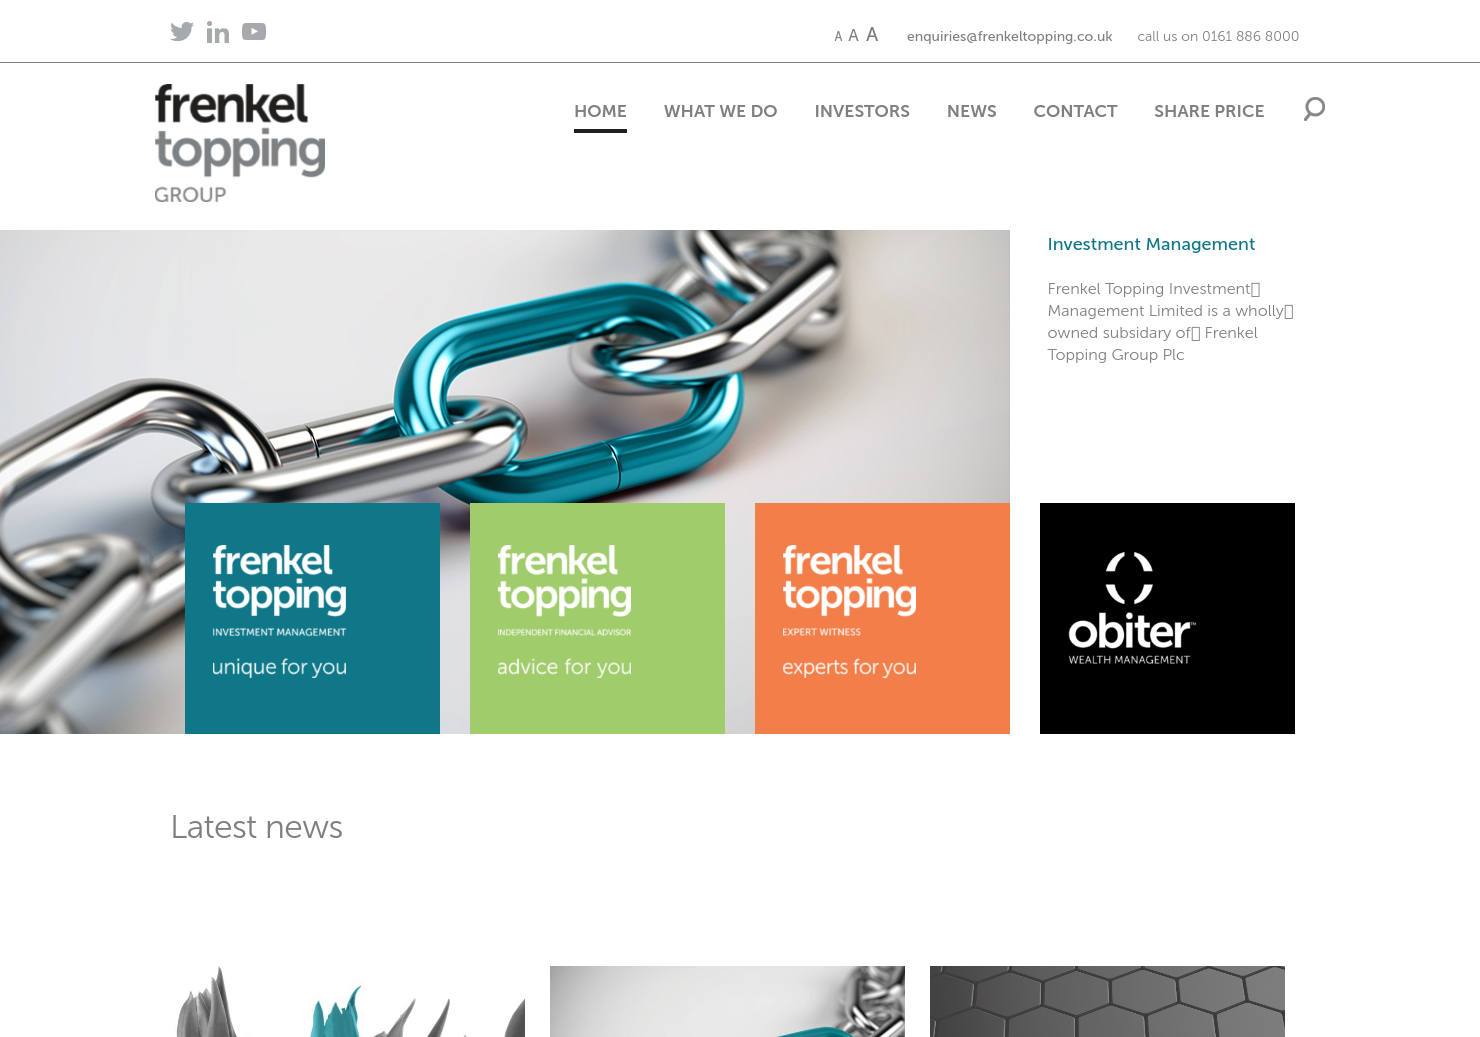 Frenkel Topping Home Page